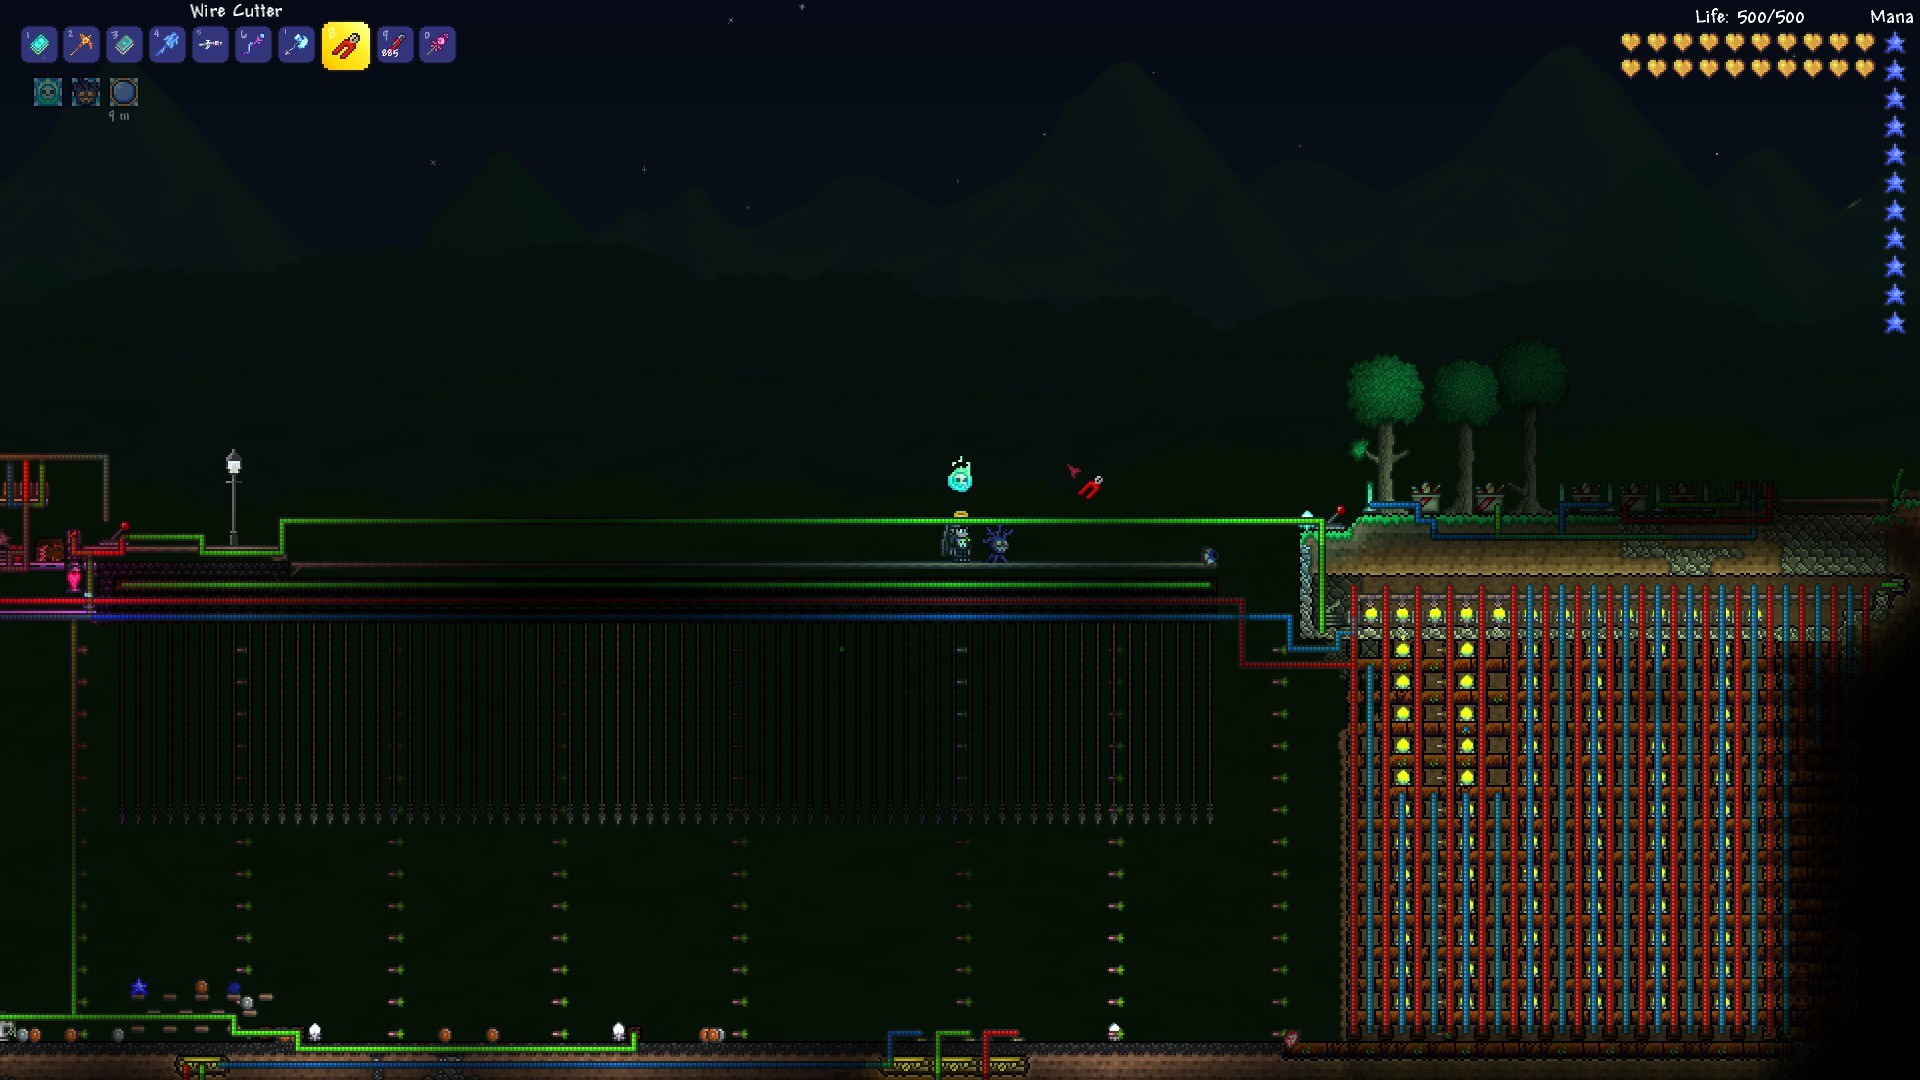 Arenas Post Yours Terraria Wiring Heart Statues Mage Arena Super Dart Traps